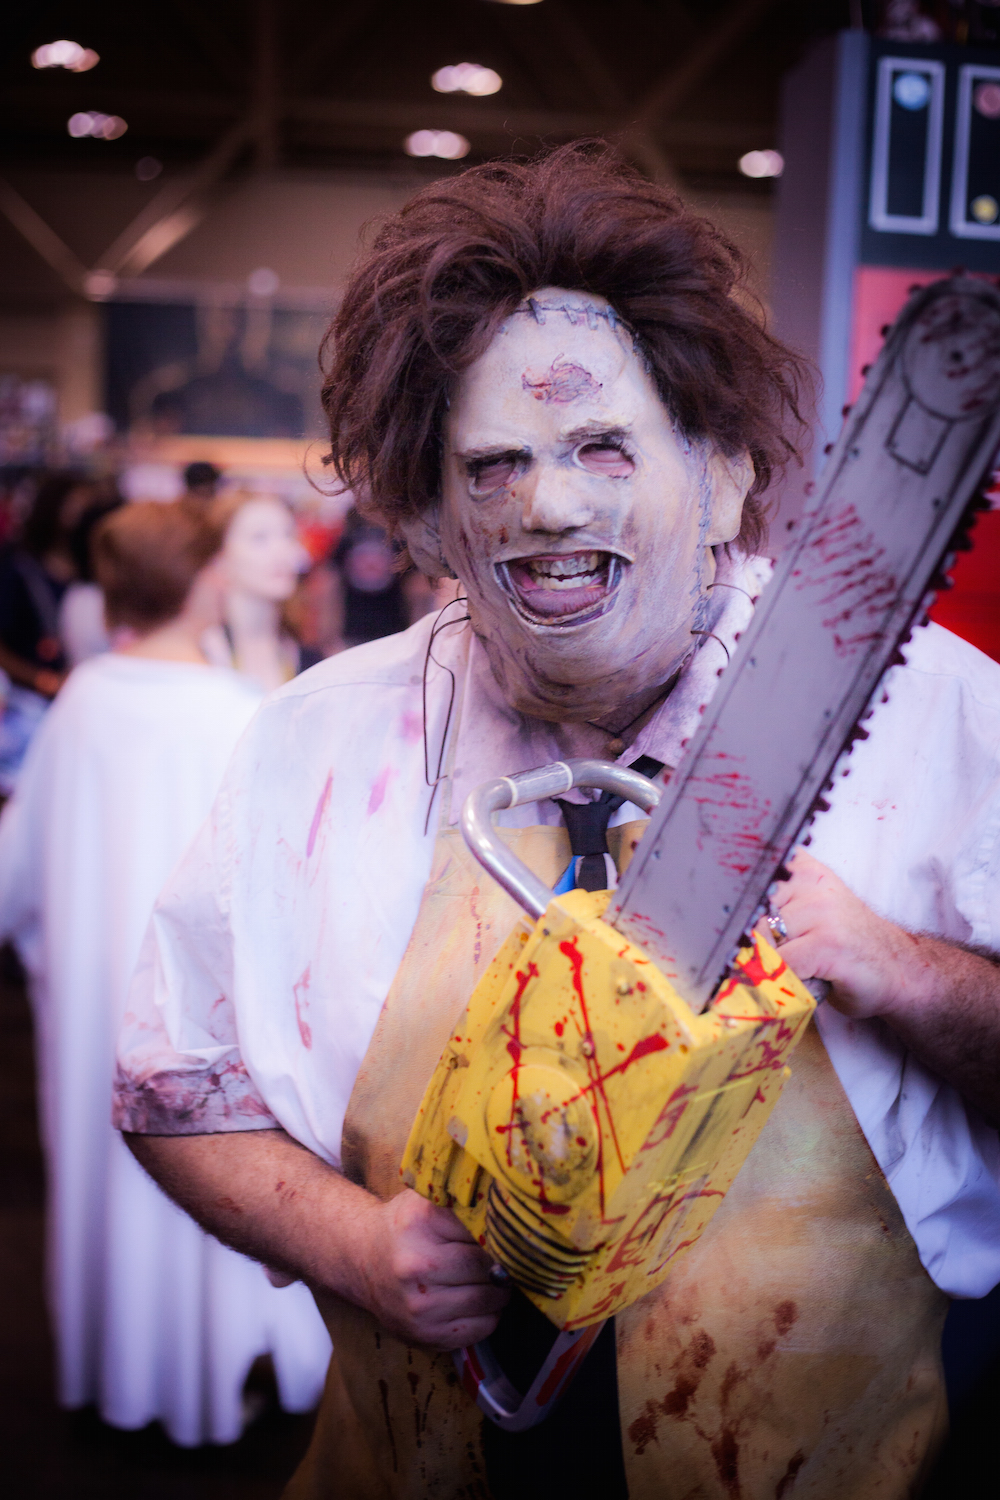 Leatherfce from Texas Chainsaw Massacre cosplay photographs